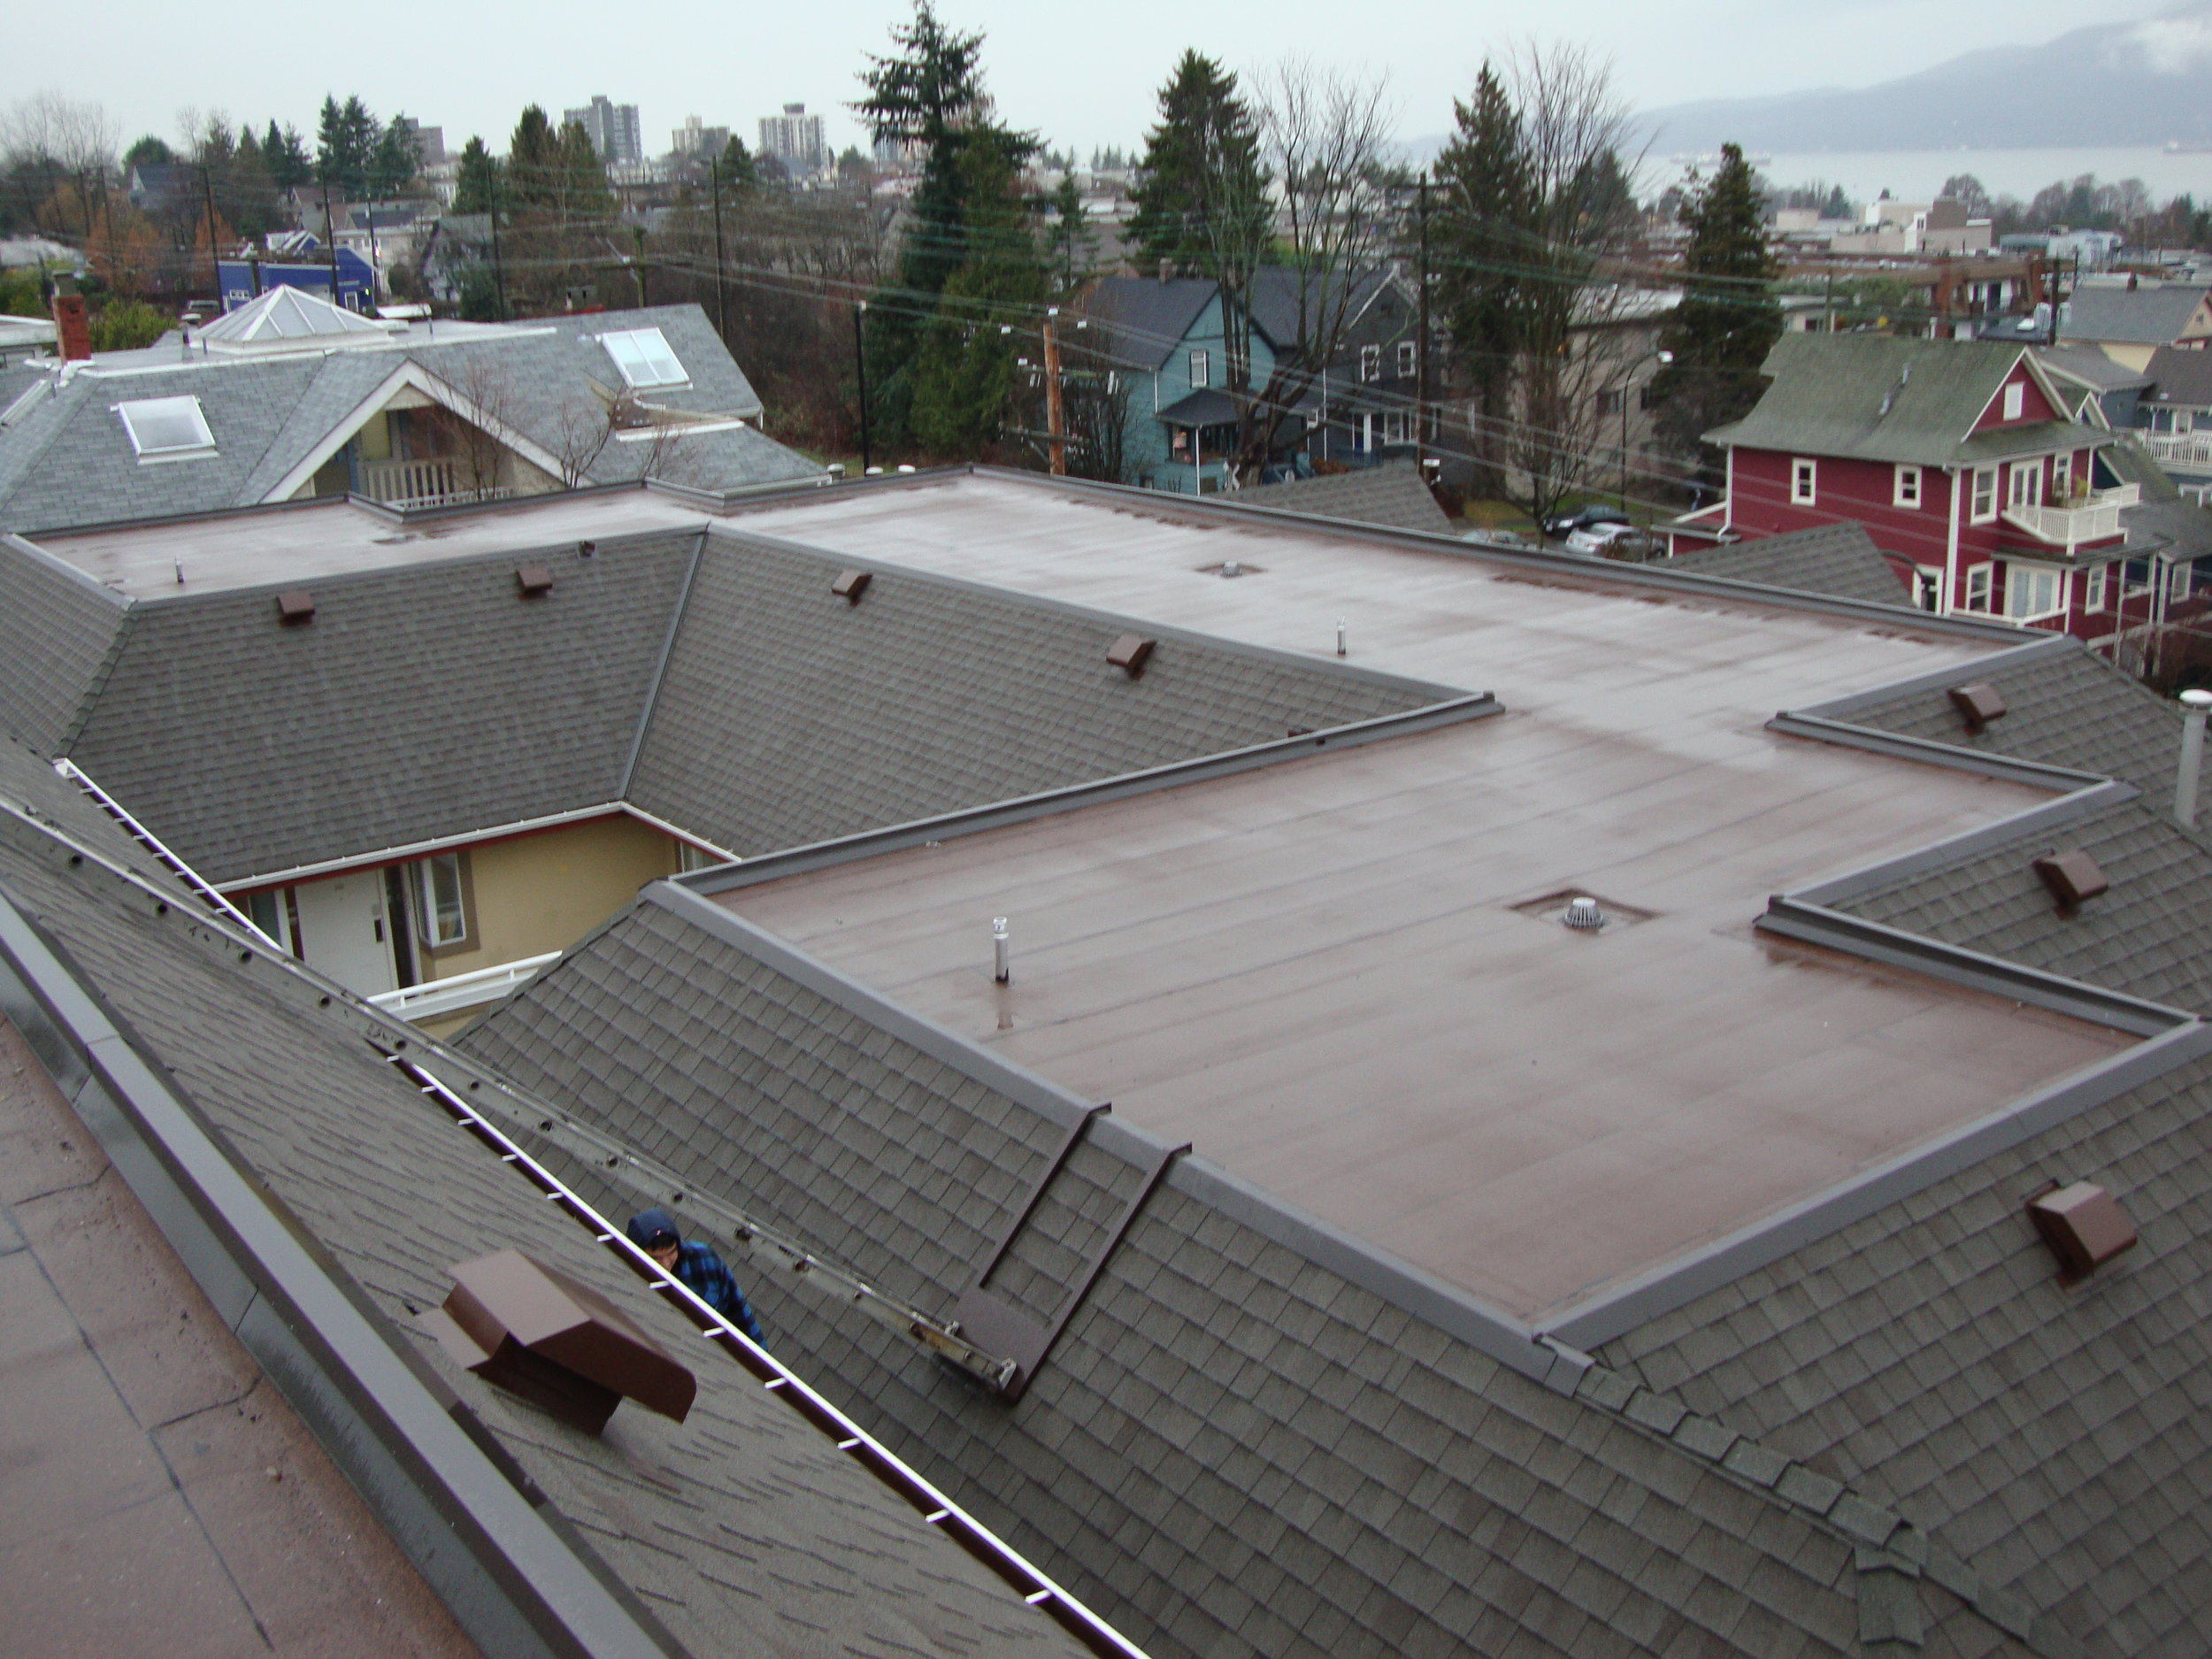 Shingle and Flat Roof Replacement - Broadway Roofing is an industry leader in multi-family/strata sloped and flat roof replacement. We have built our name on quality workmanship and excellent project management from start to finish.